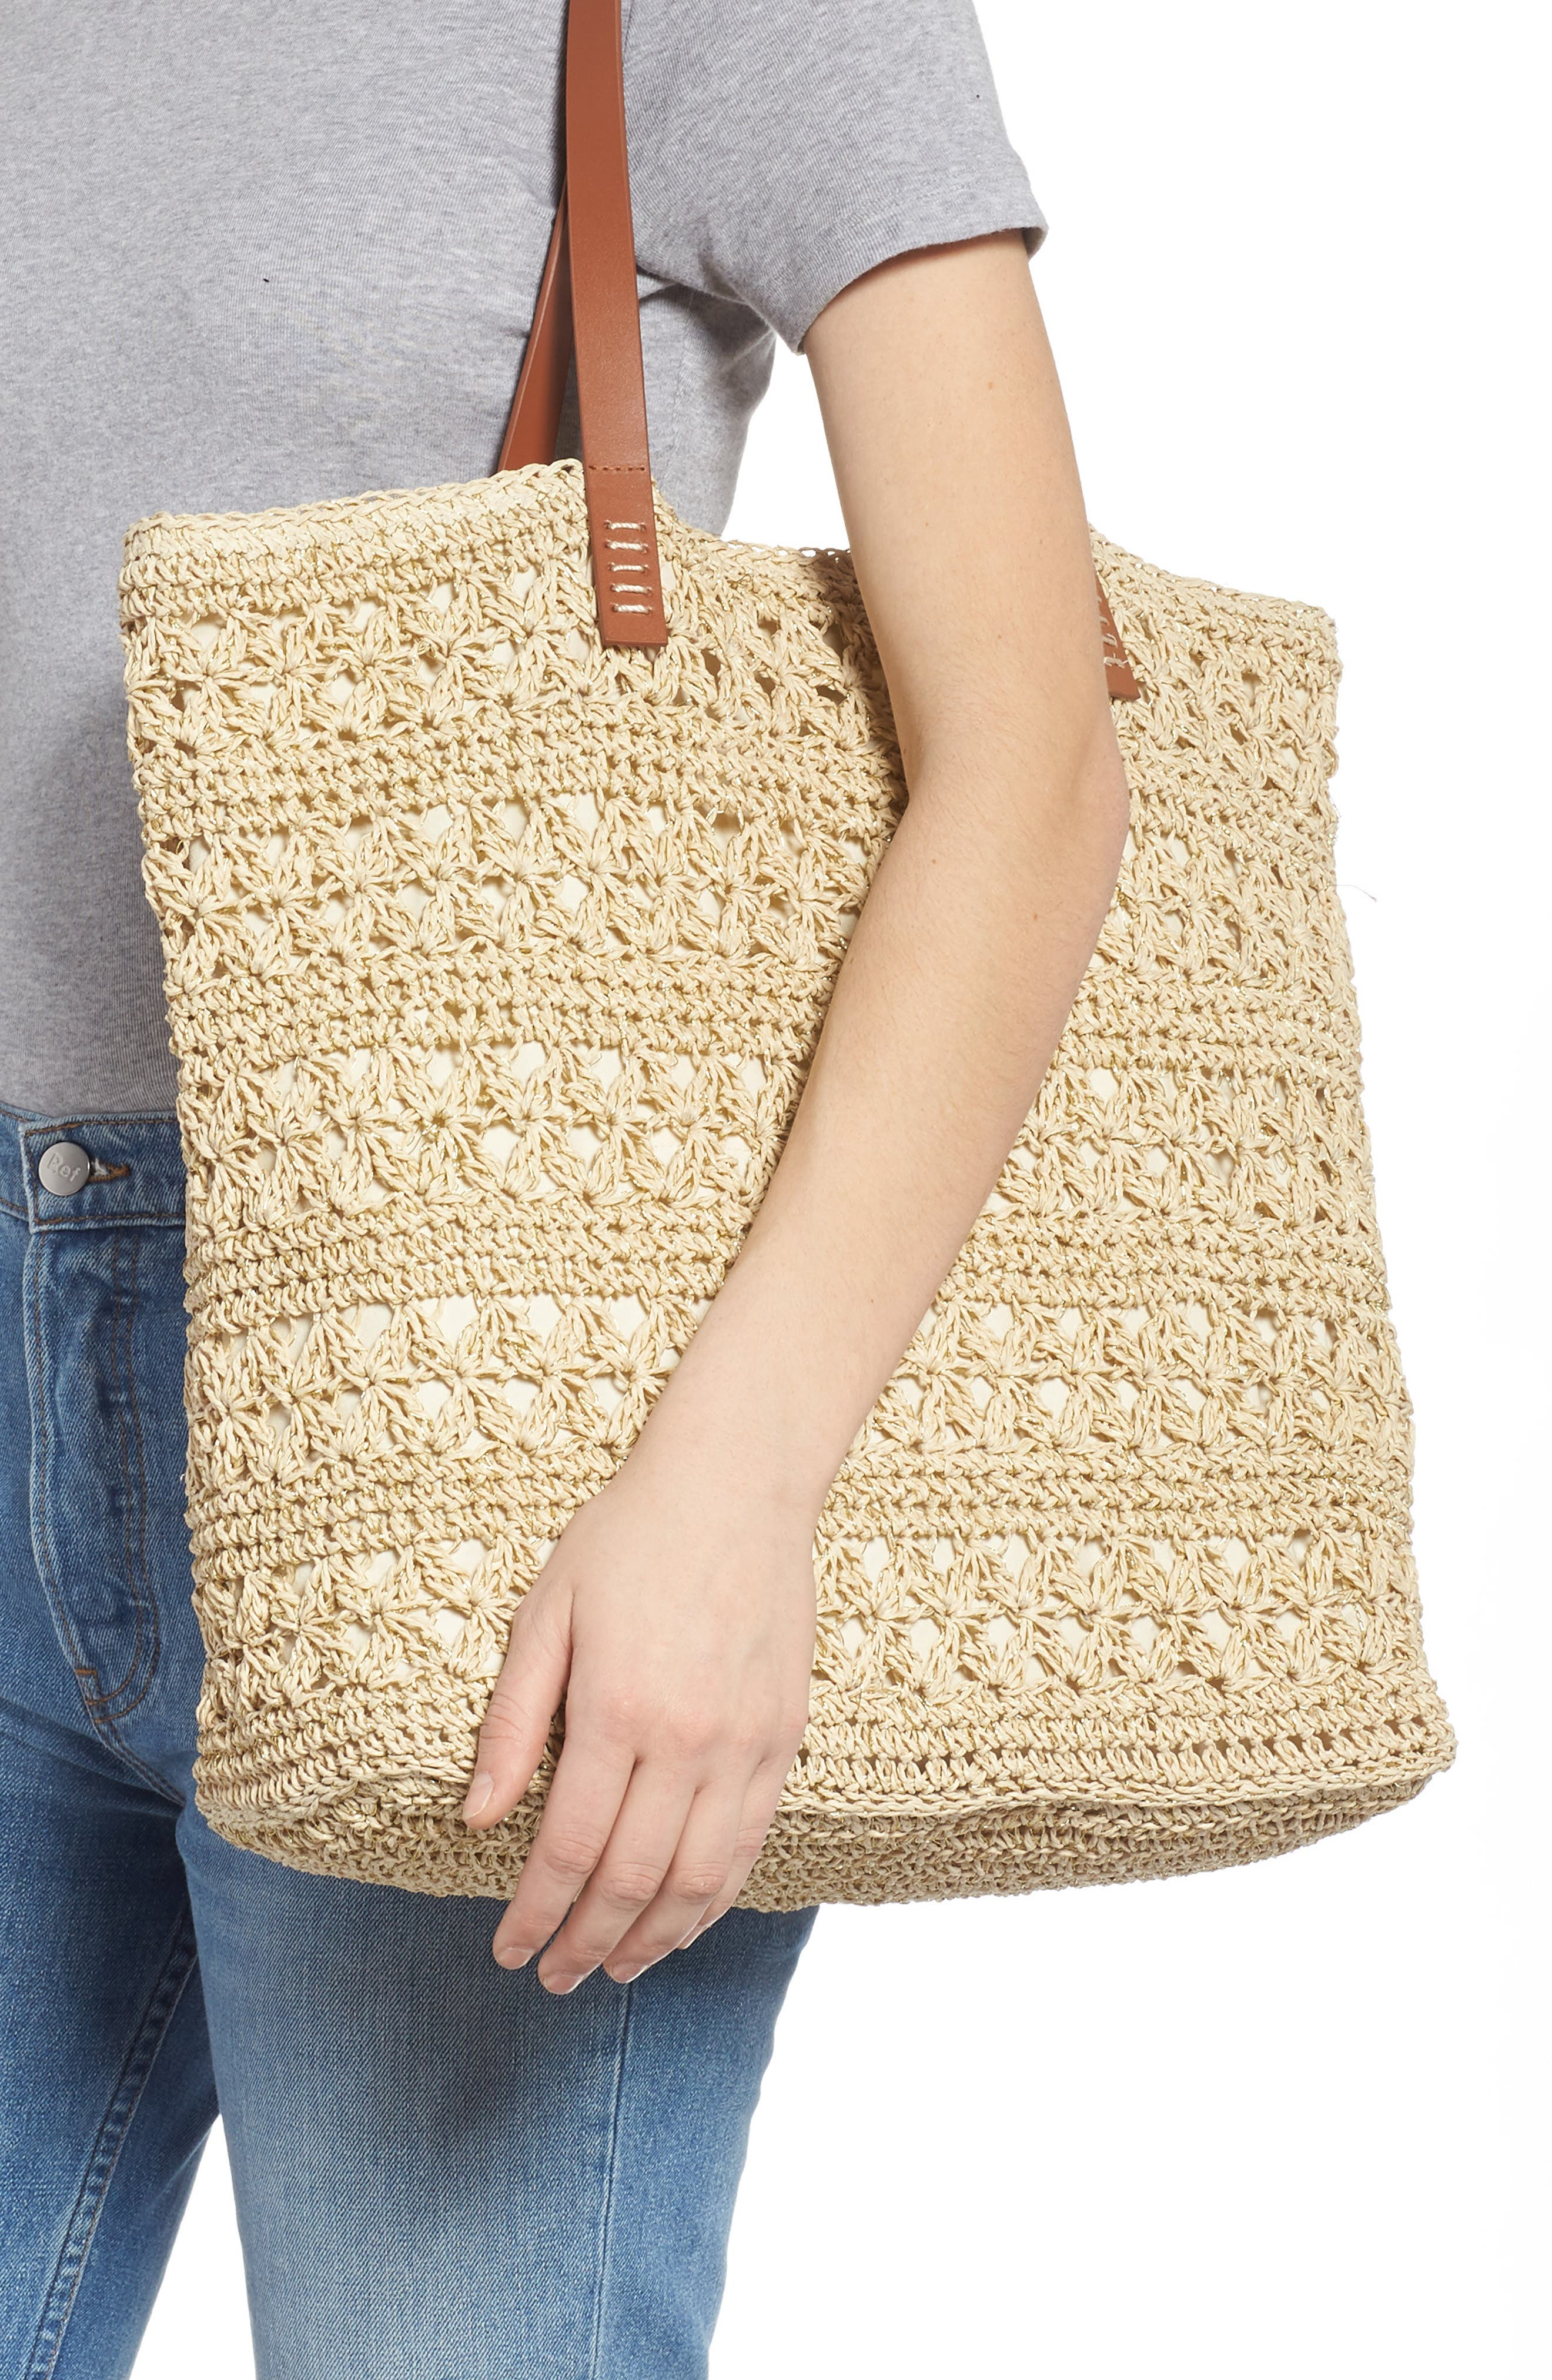 NORDSTROM,                             Packable Woven Raffia Tote,                             Alternate thumbnail 2, color,                             NATURAL